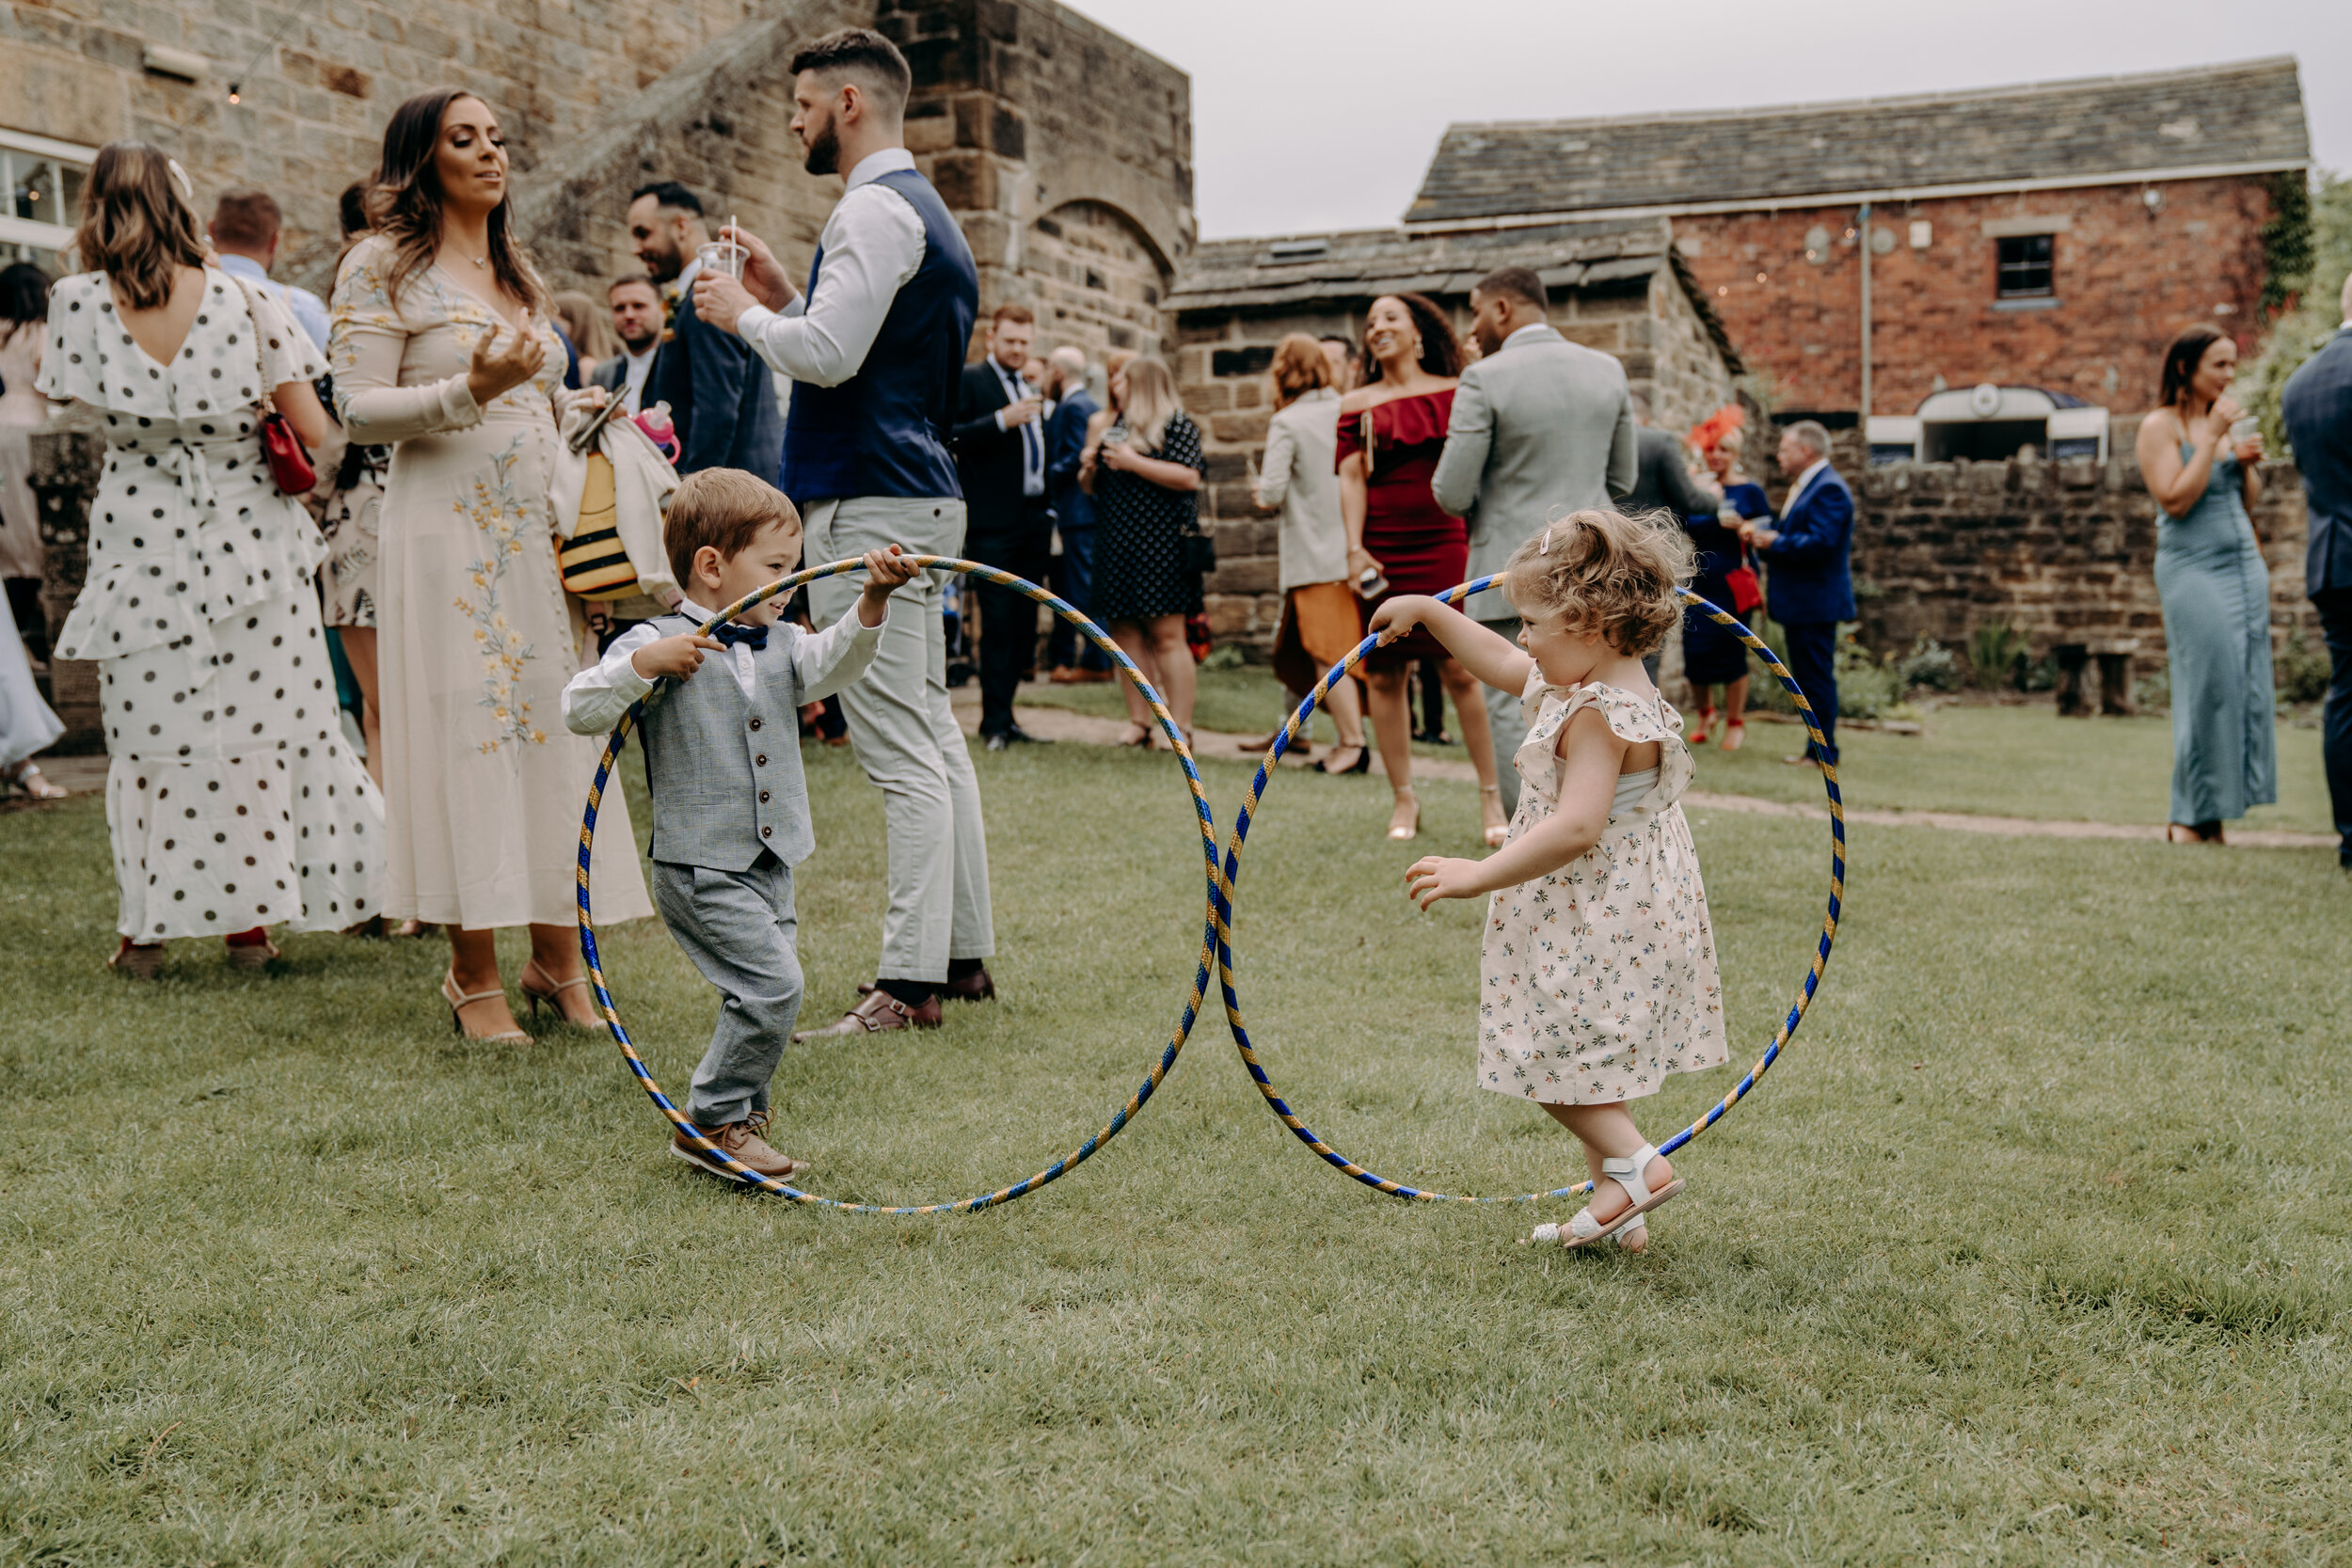 Kids playing at weddings